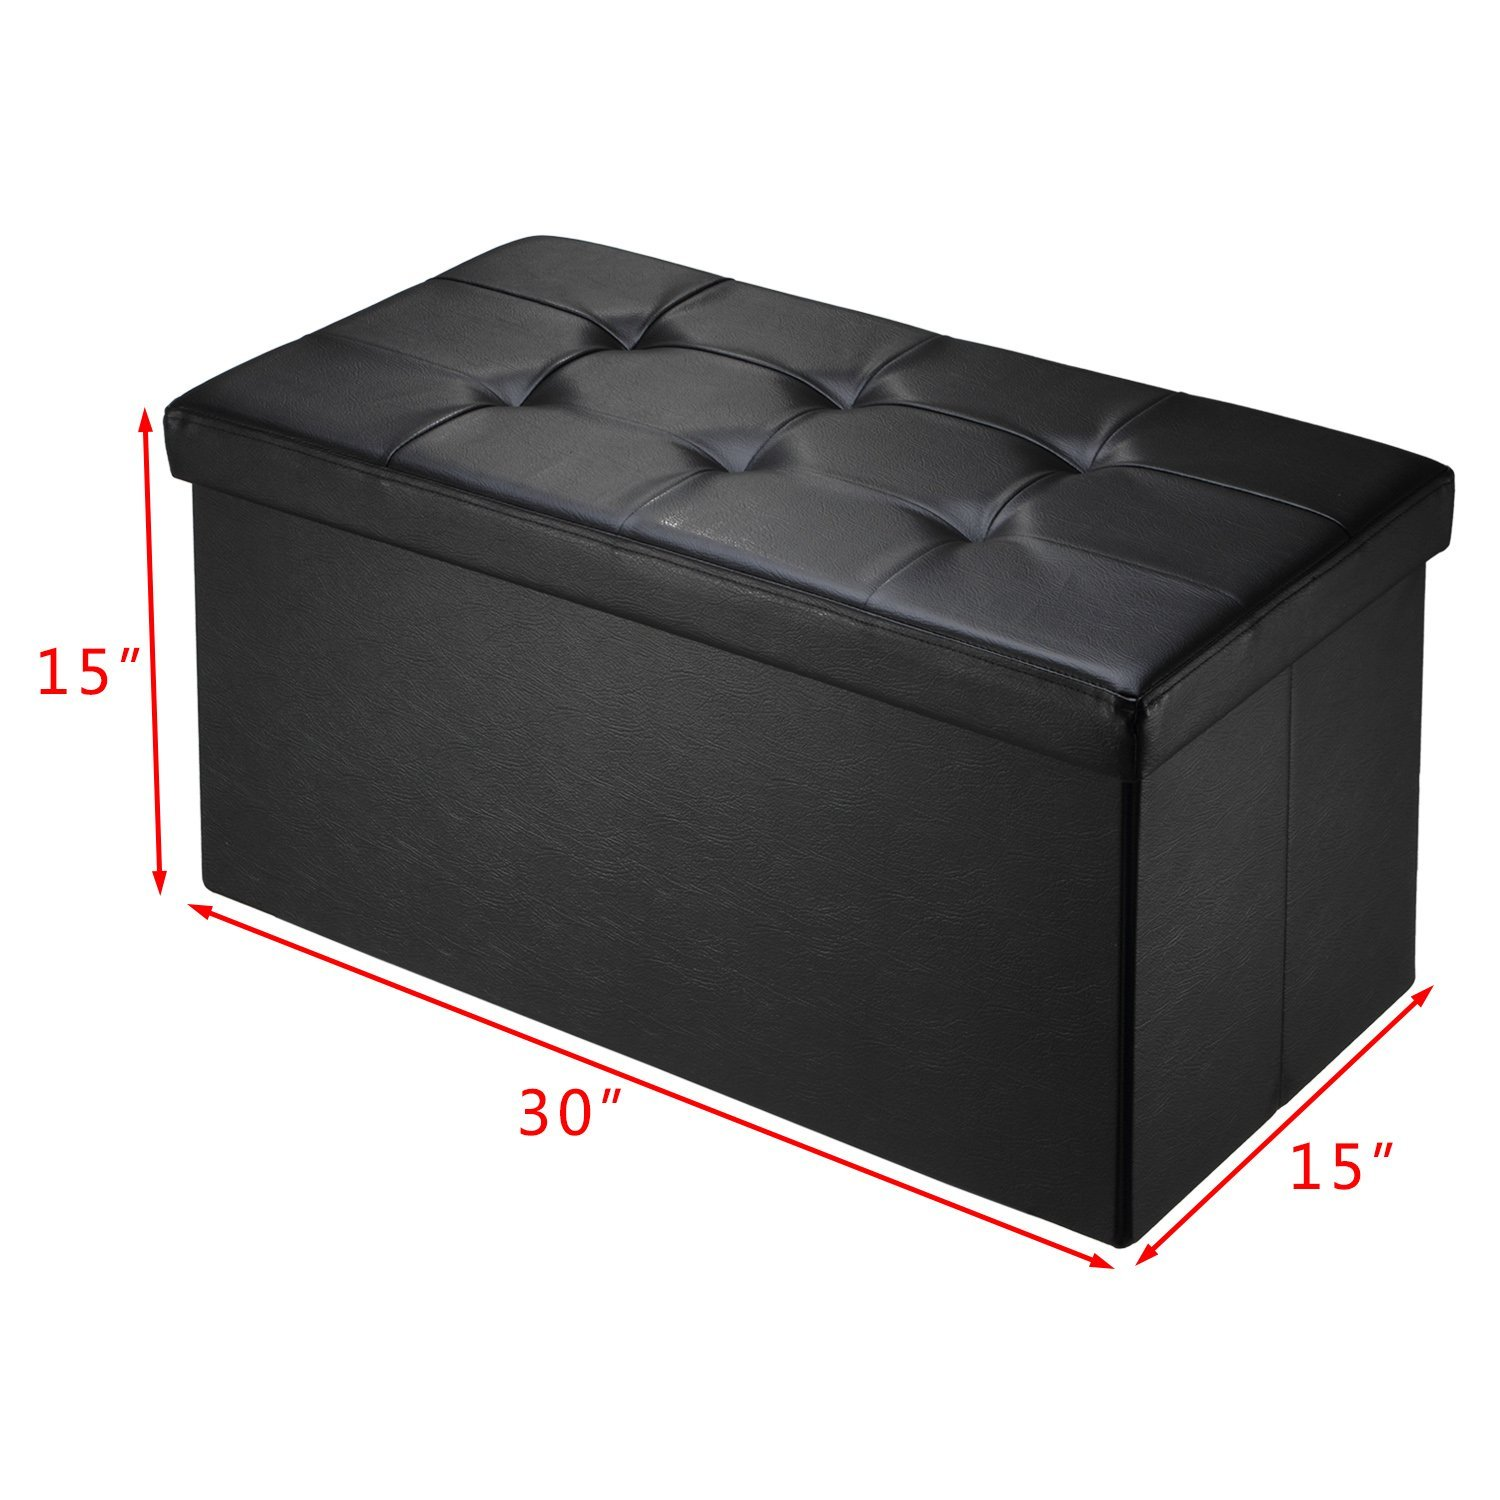 Ollieroo Faux Leather Folding Storage Ottoman Bench Foot Rest Stool Seat Black 30''X15''X15'' by Ollieroo (Image #7)